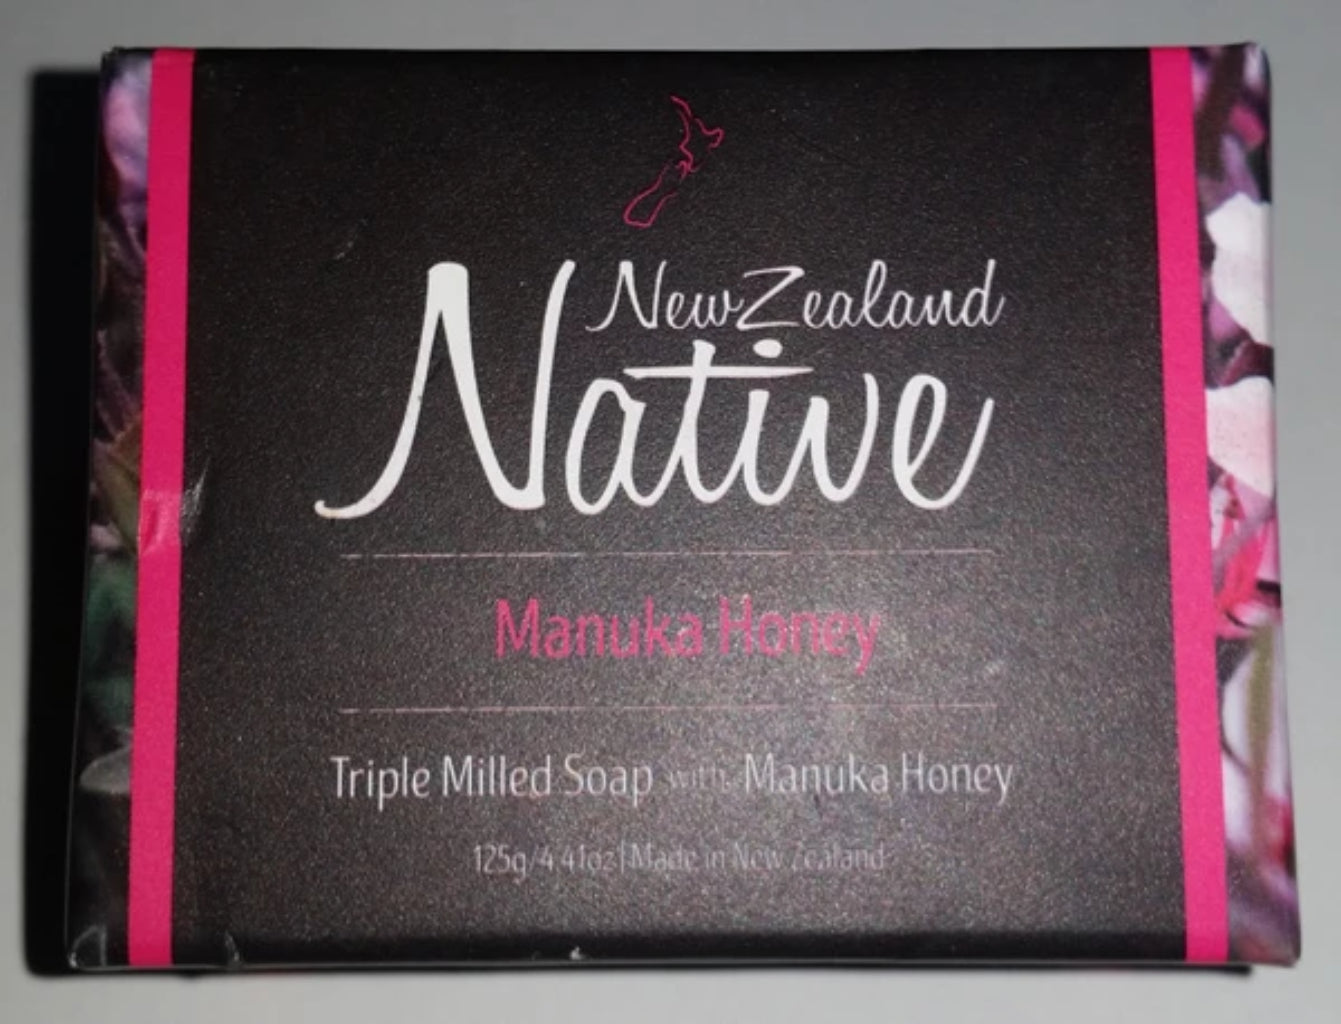 New Zealand Native Manuka Honey Soap - Face & Body | Papyrus Essential Luxuries